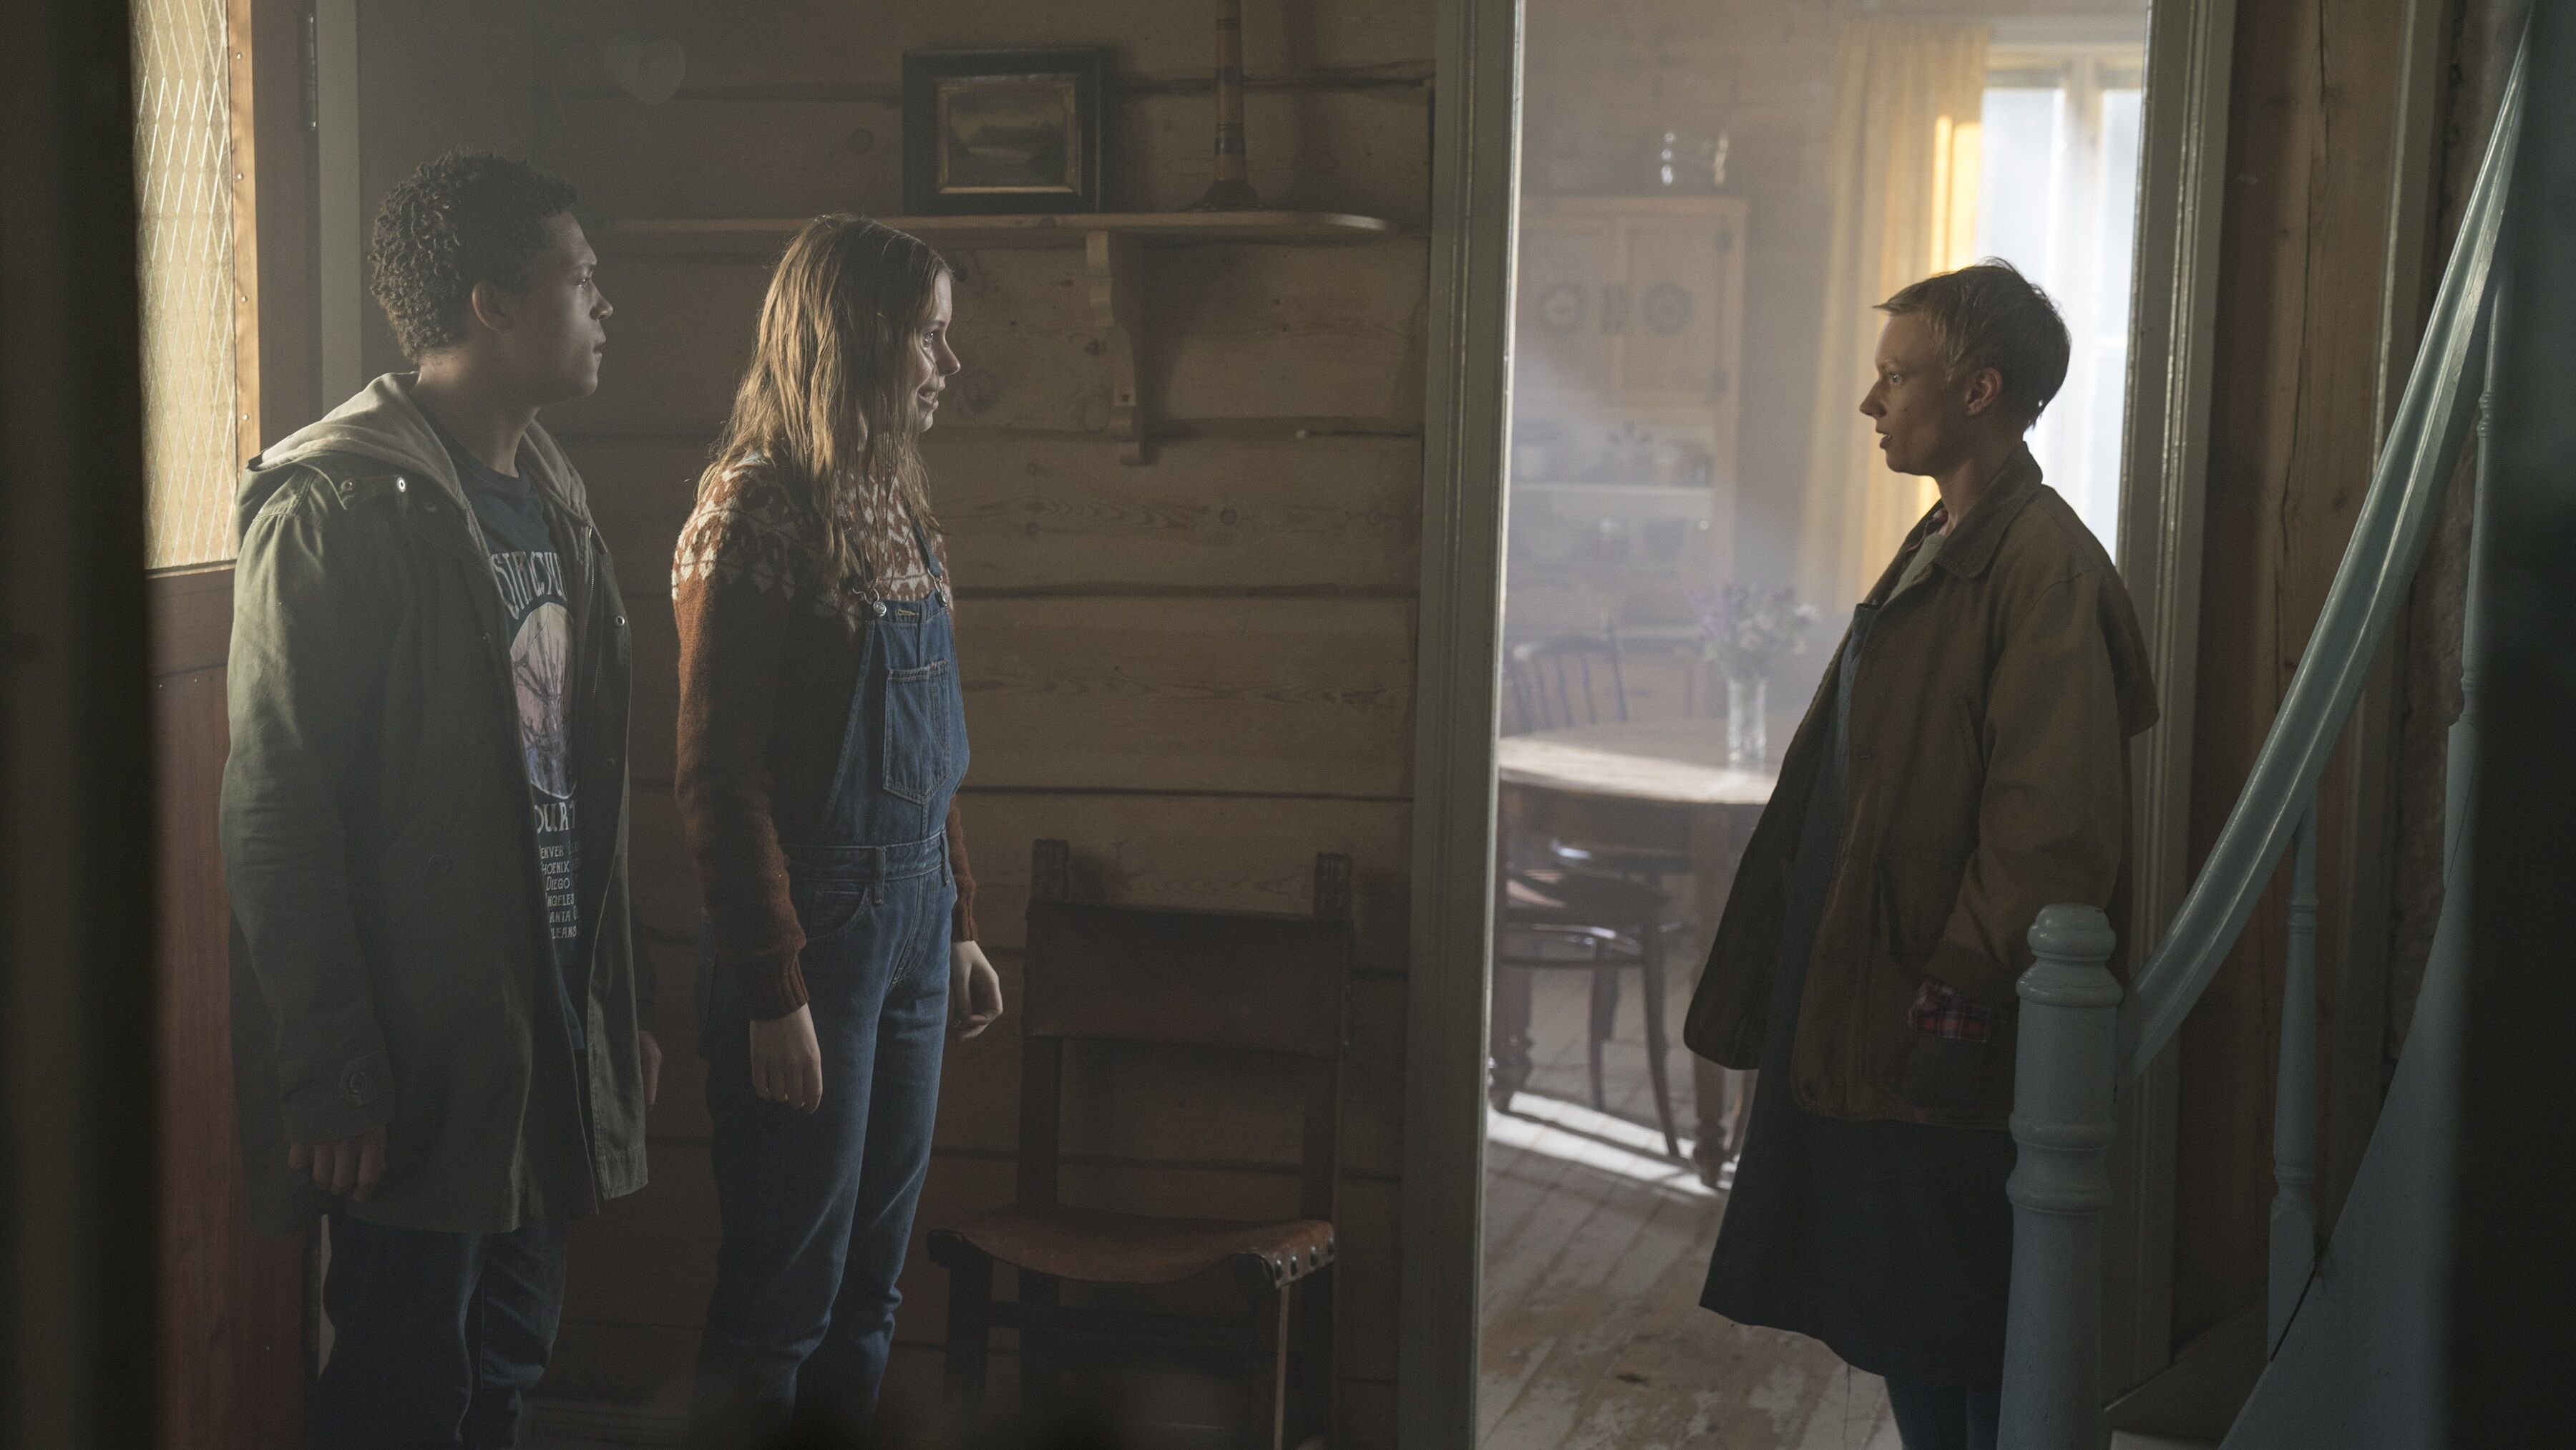 The Innocents episode 7 recap: Will You Take Me Too?